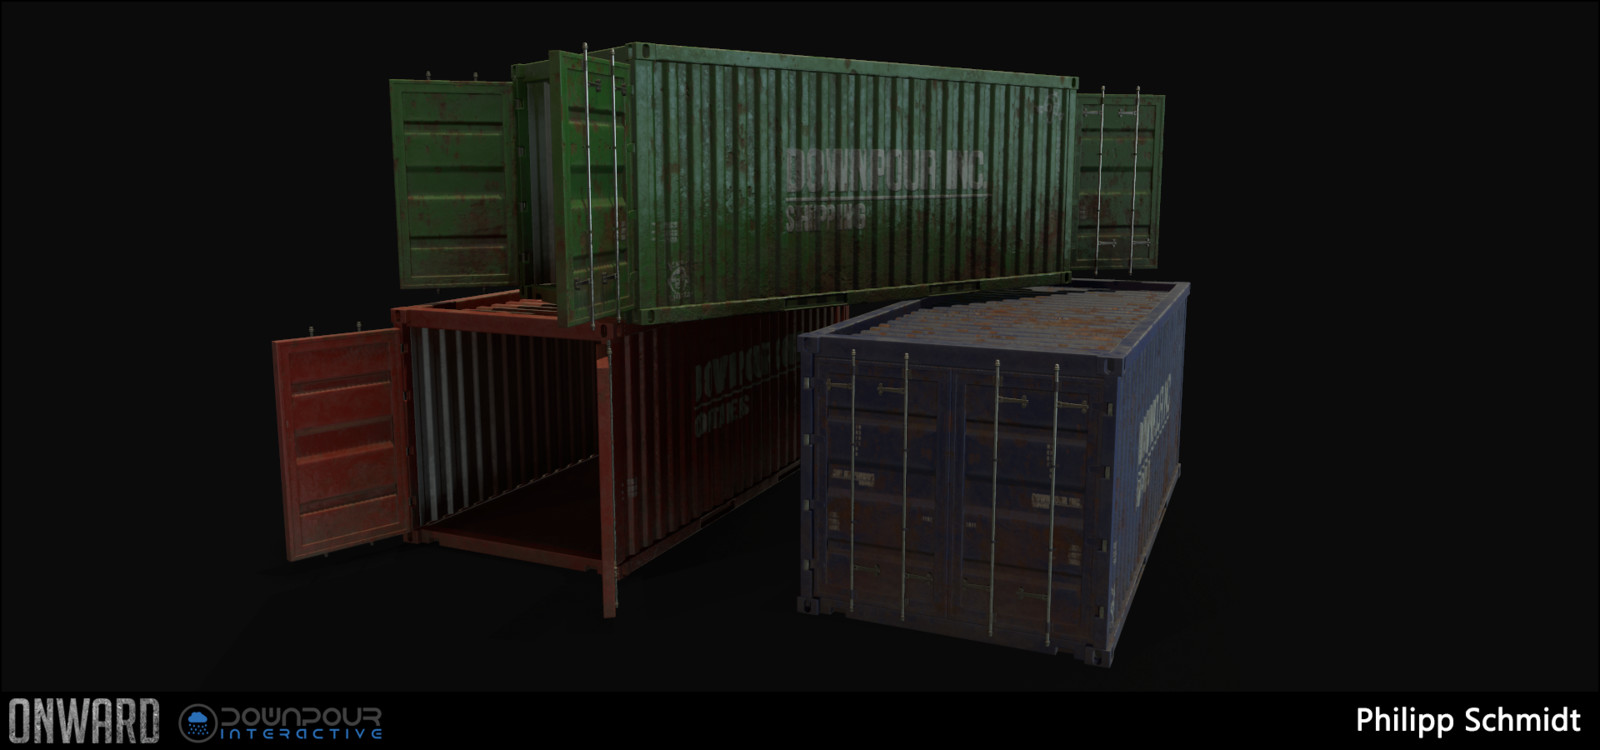 ONWARD Containers